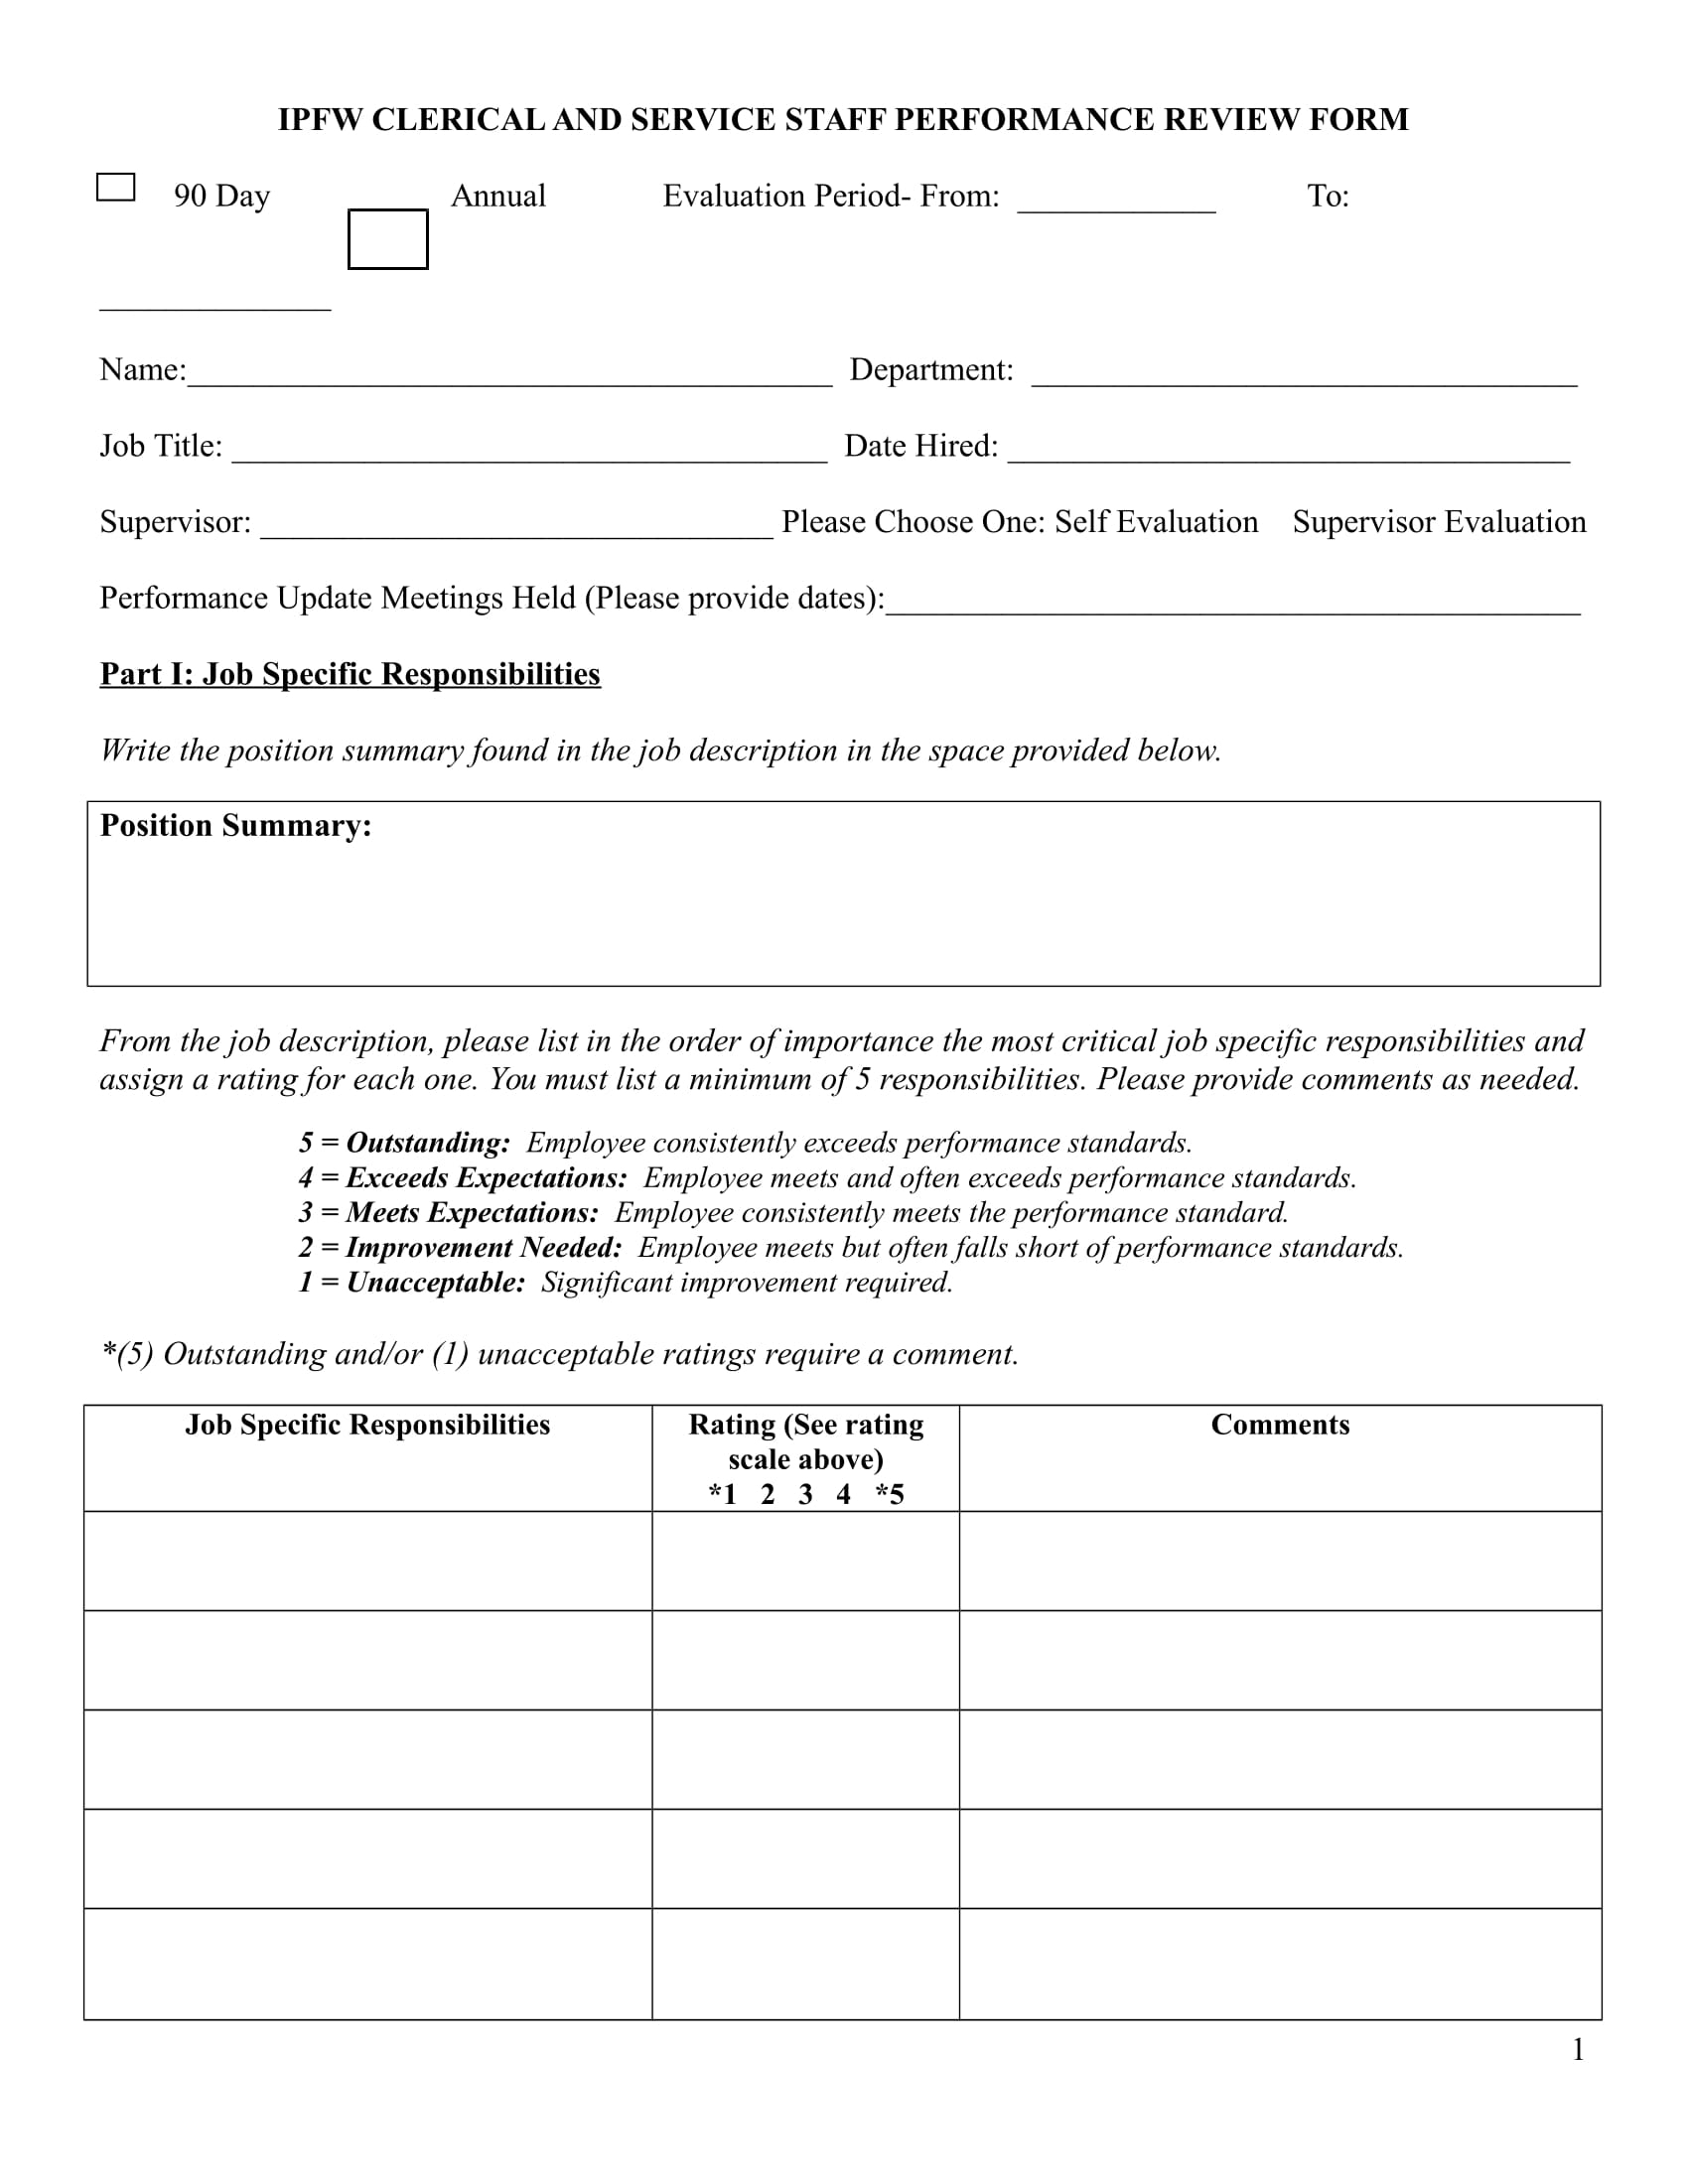 90 day review template 14  90 Day Review Forms - Free Word, PDF Format Download